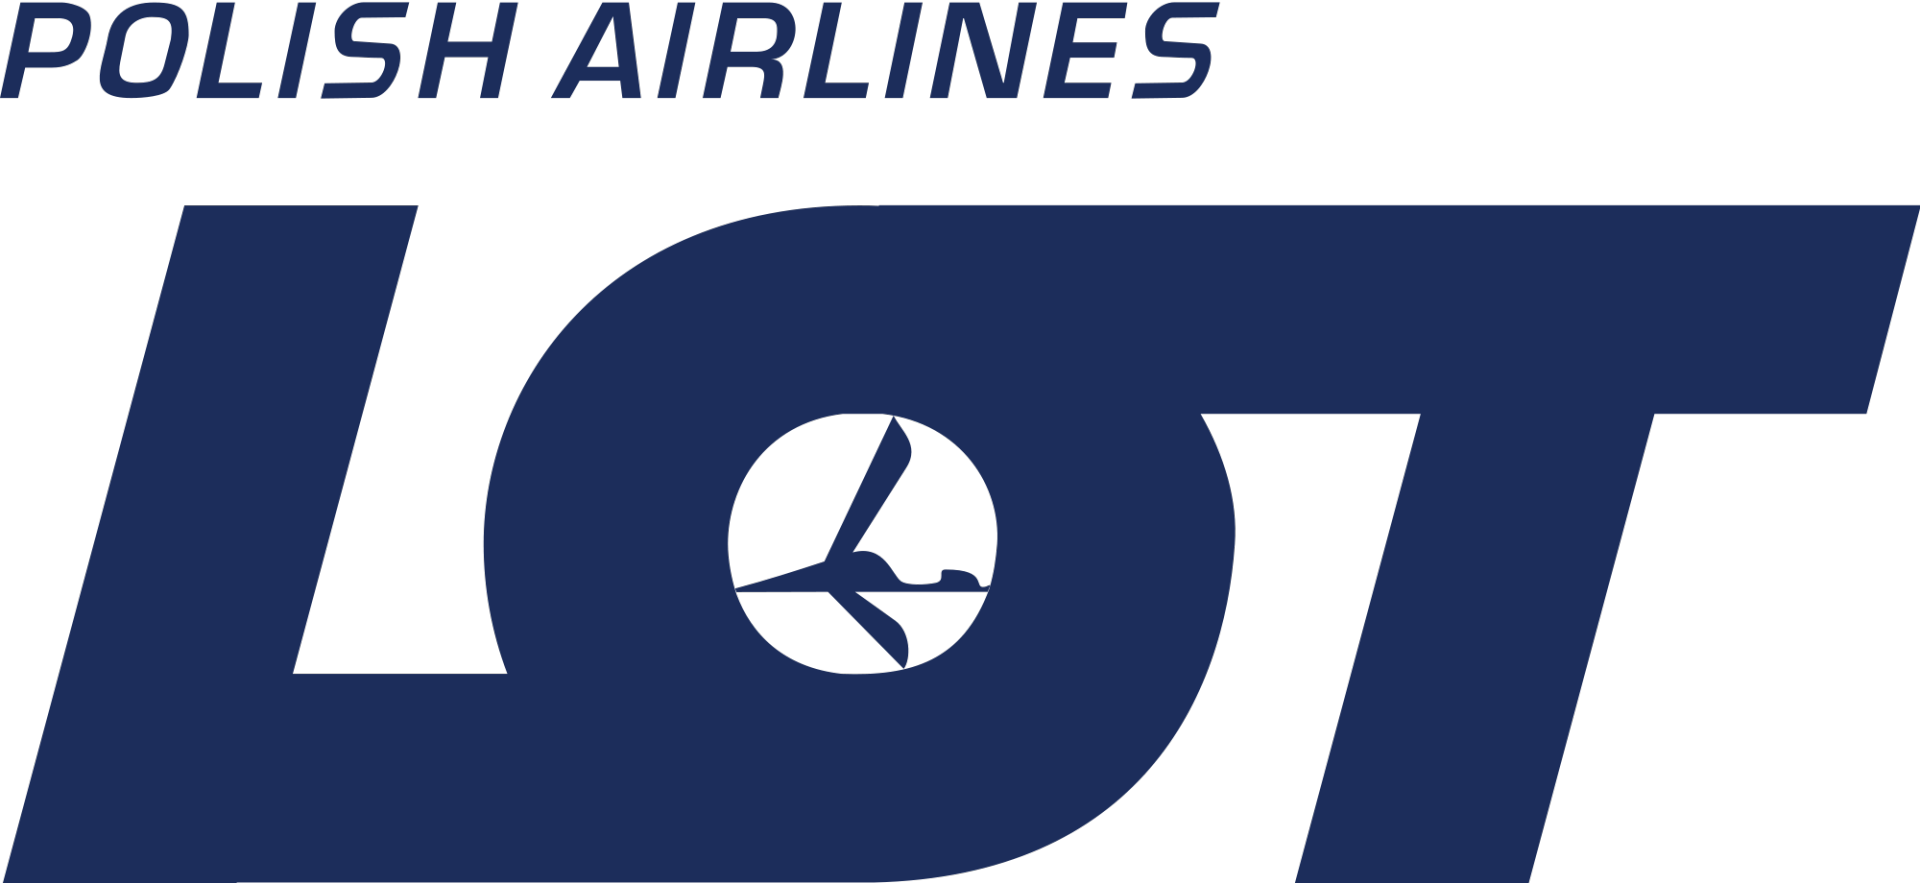 Lot Polish Airlines (LO)